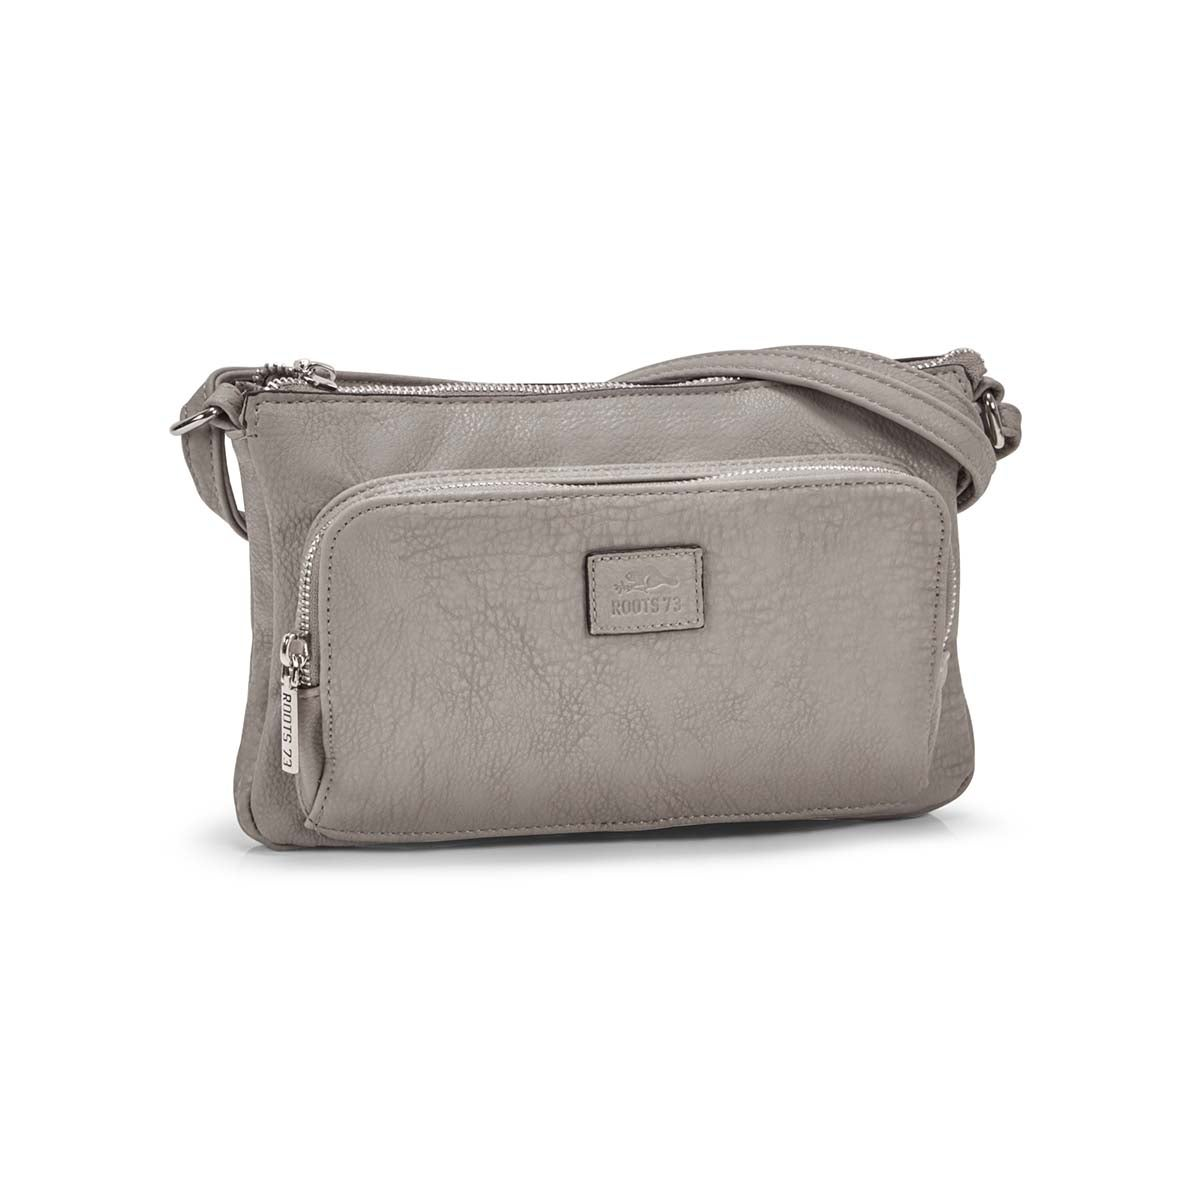 Women's  R4886 grey cross body bag